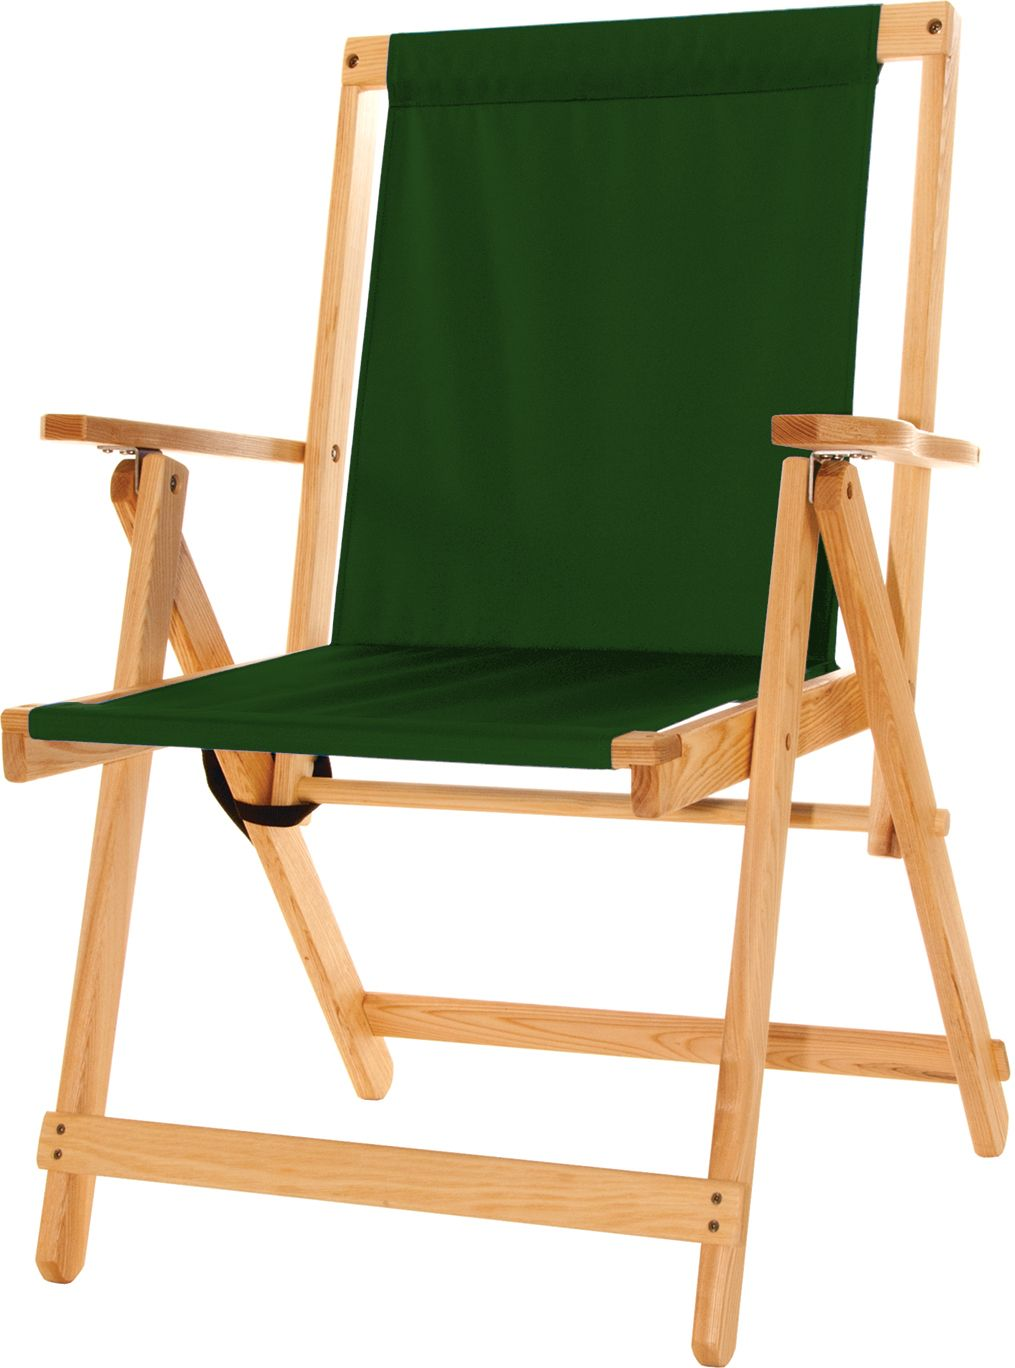 HIghlands Deck Chair Forest Green